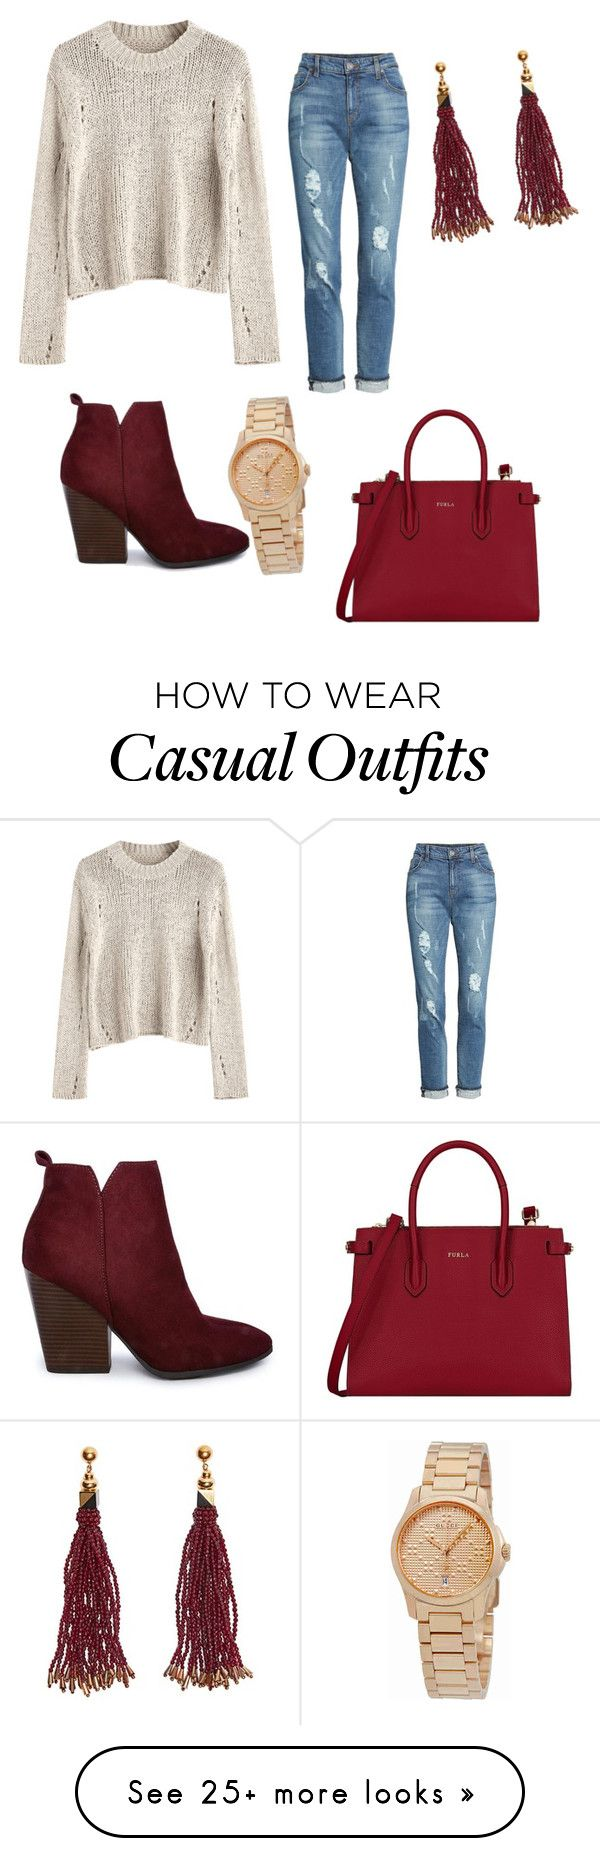 """Casual and comfortable"" by katycobb21 on Polyvore featuring KUT from the Kloth, Furla, Nocturne and Gucci"